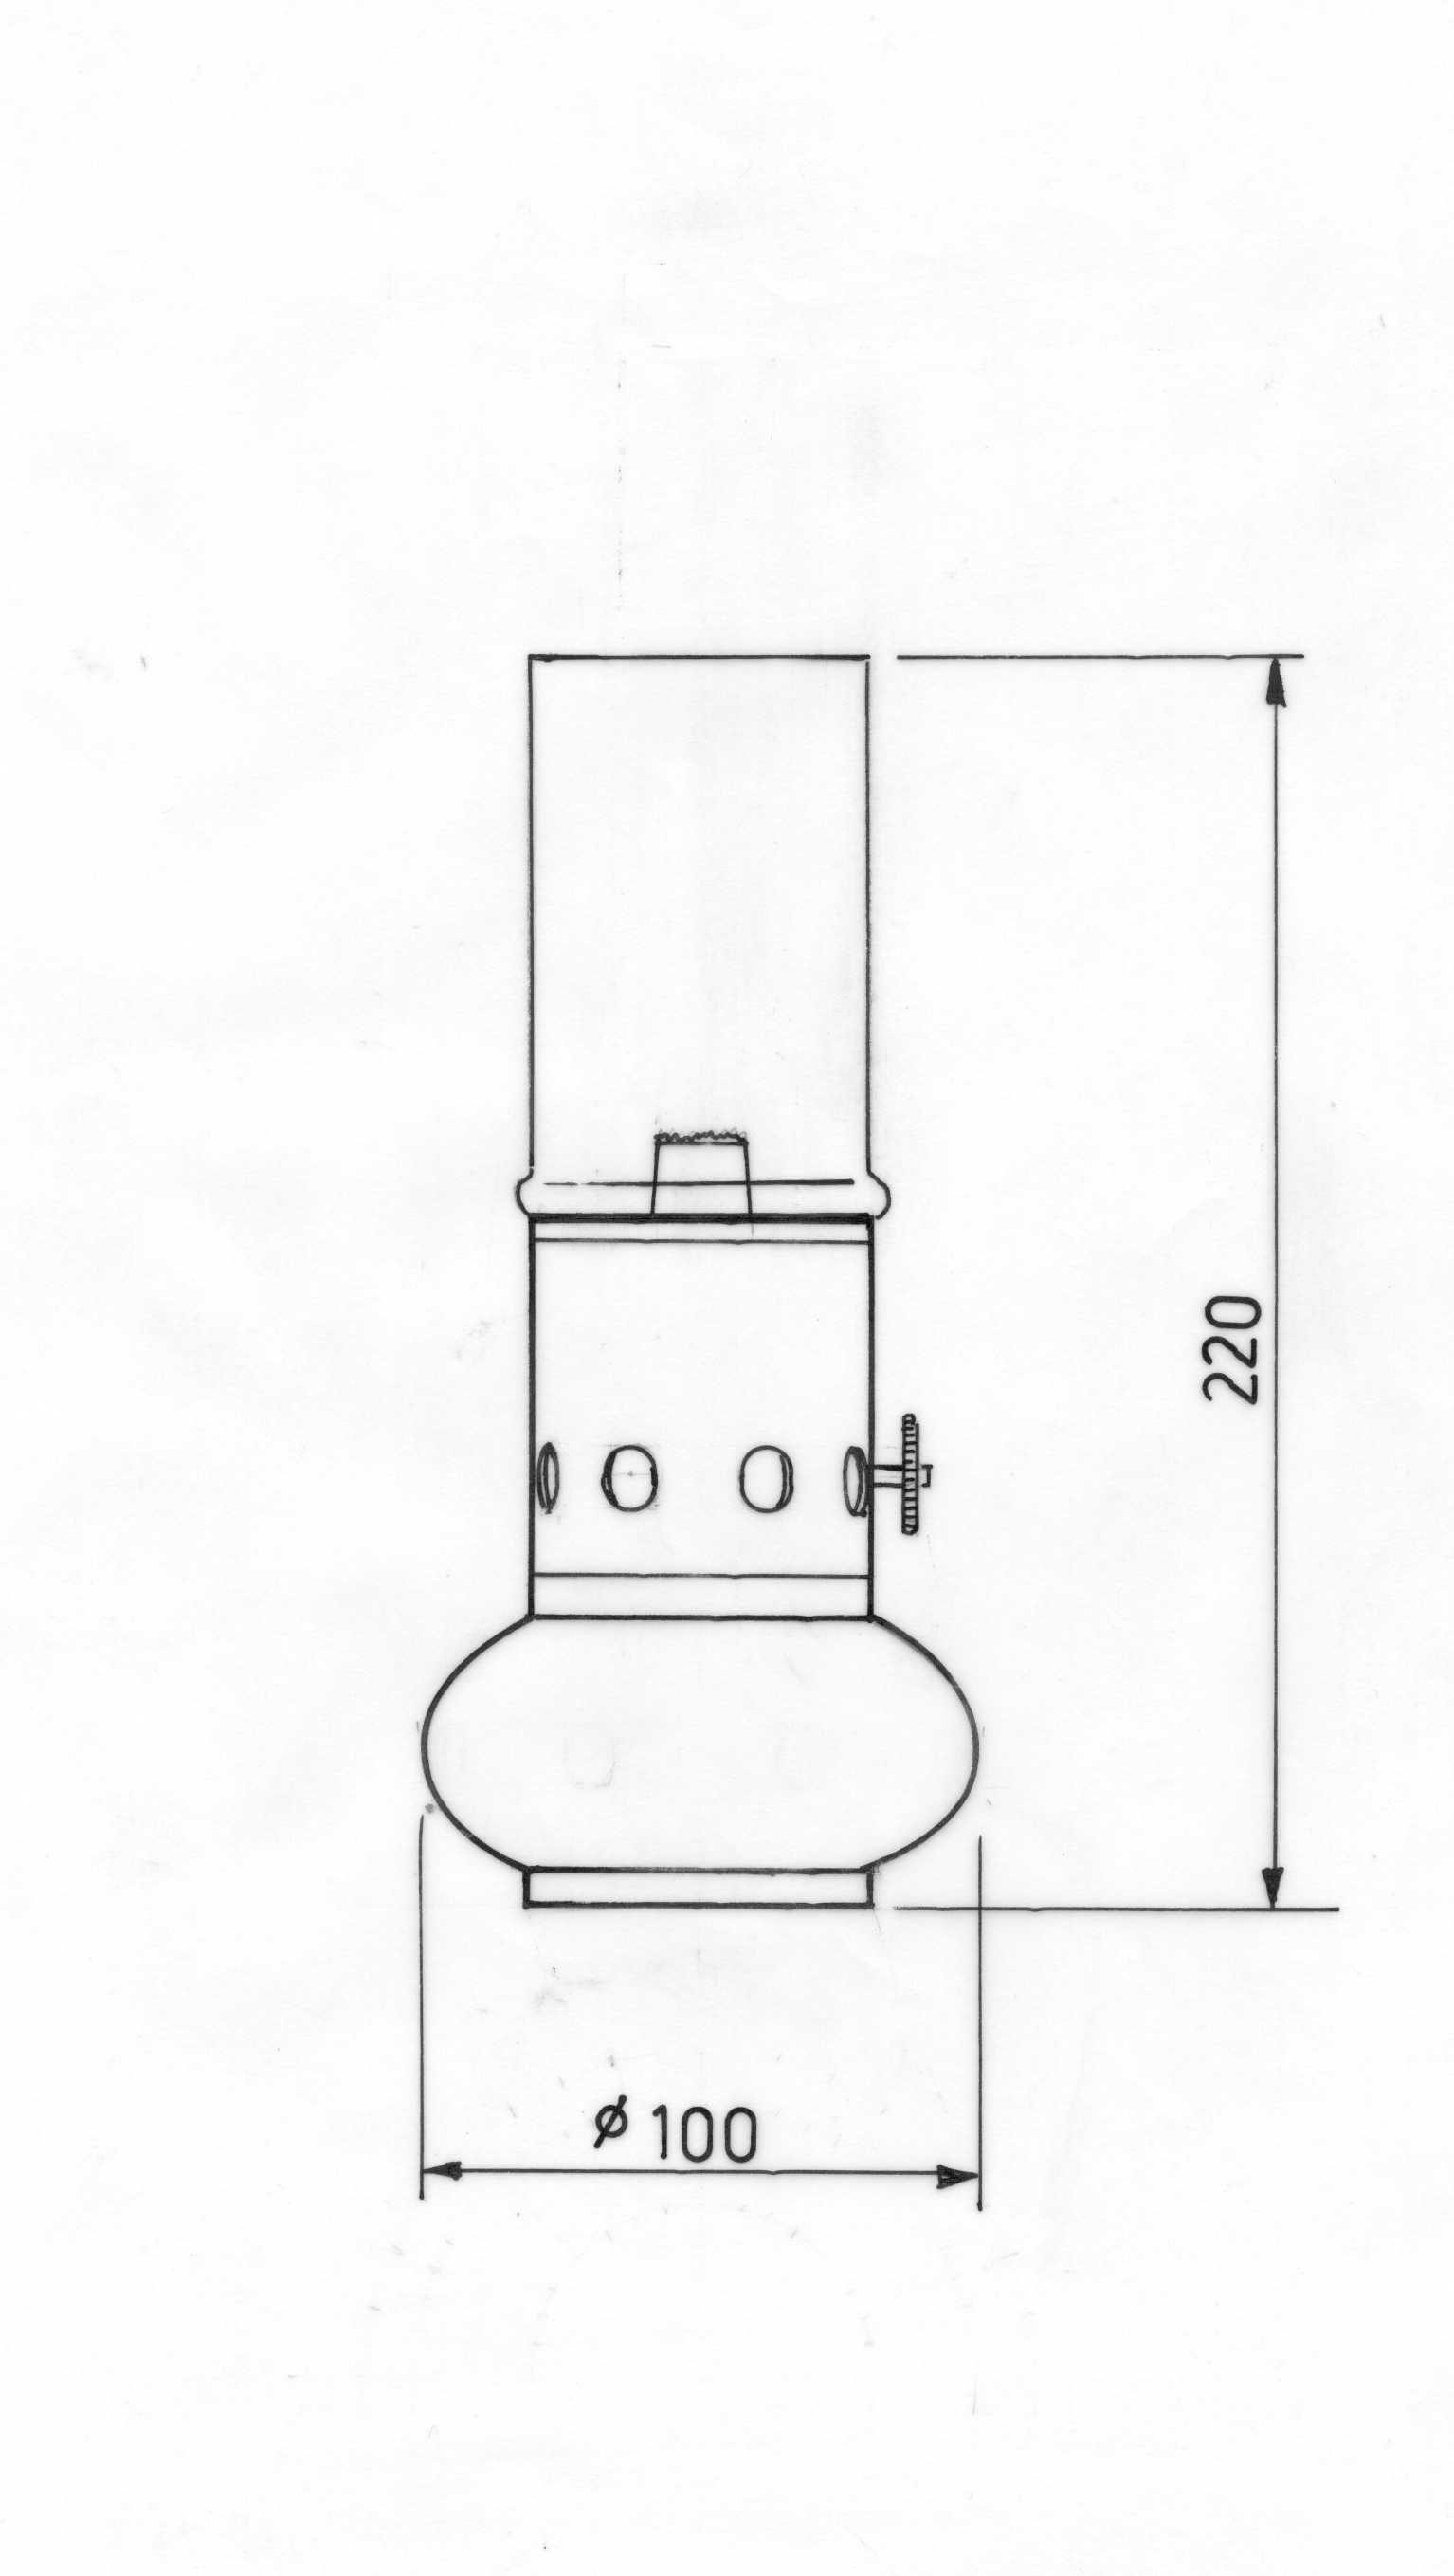 Table lamp for drawing - View Technical Drawing